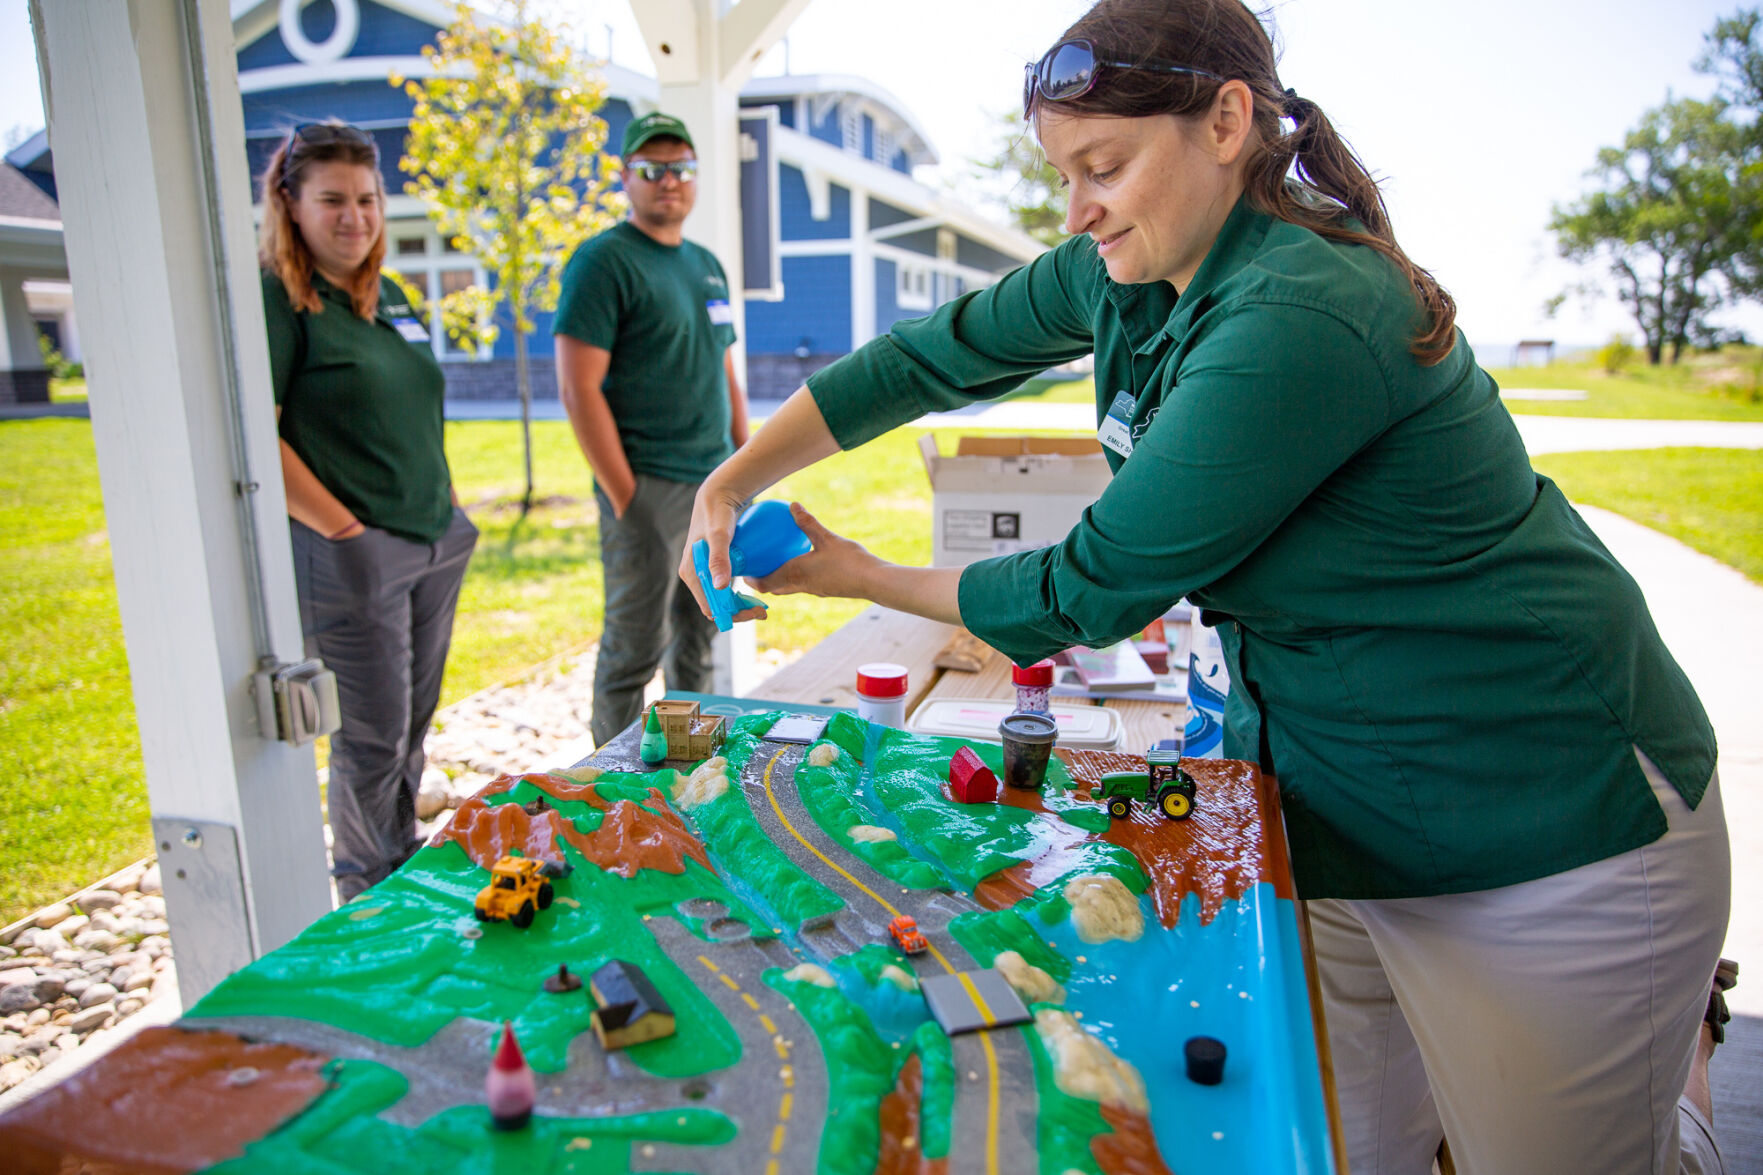 Teaching the teachers: Workshop held to inspire environmental learning, stewardship at Southwick Beach